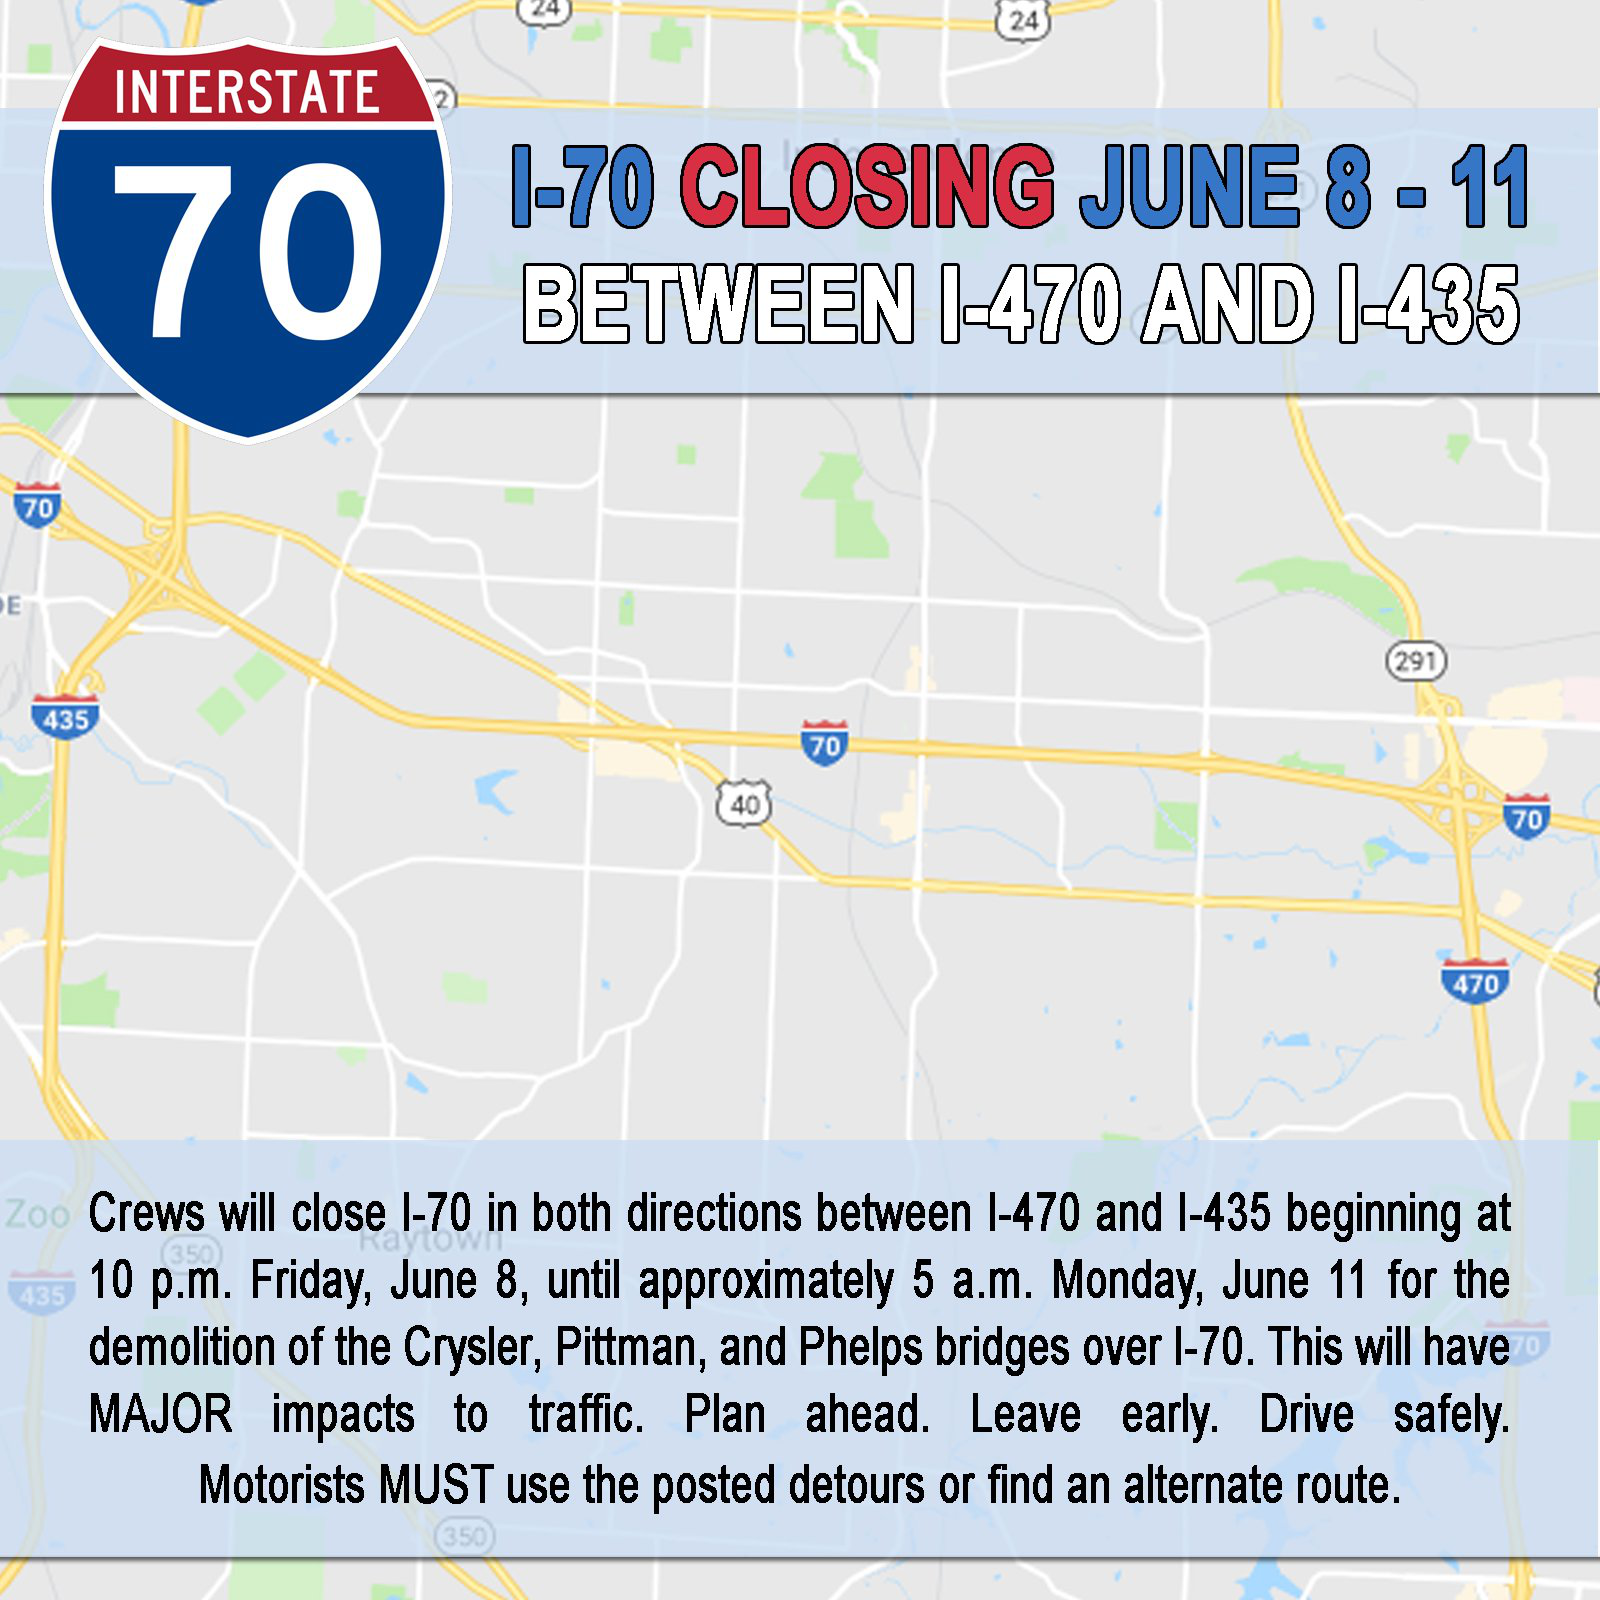 Truckers Plan For Detours On Parts Of Kansas City's I-70